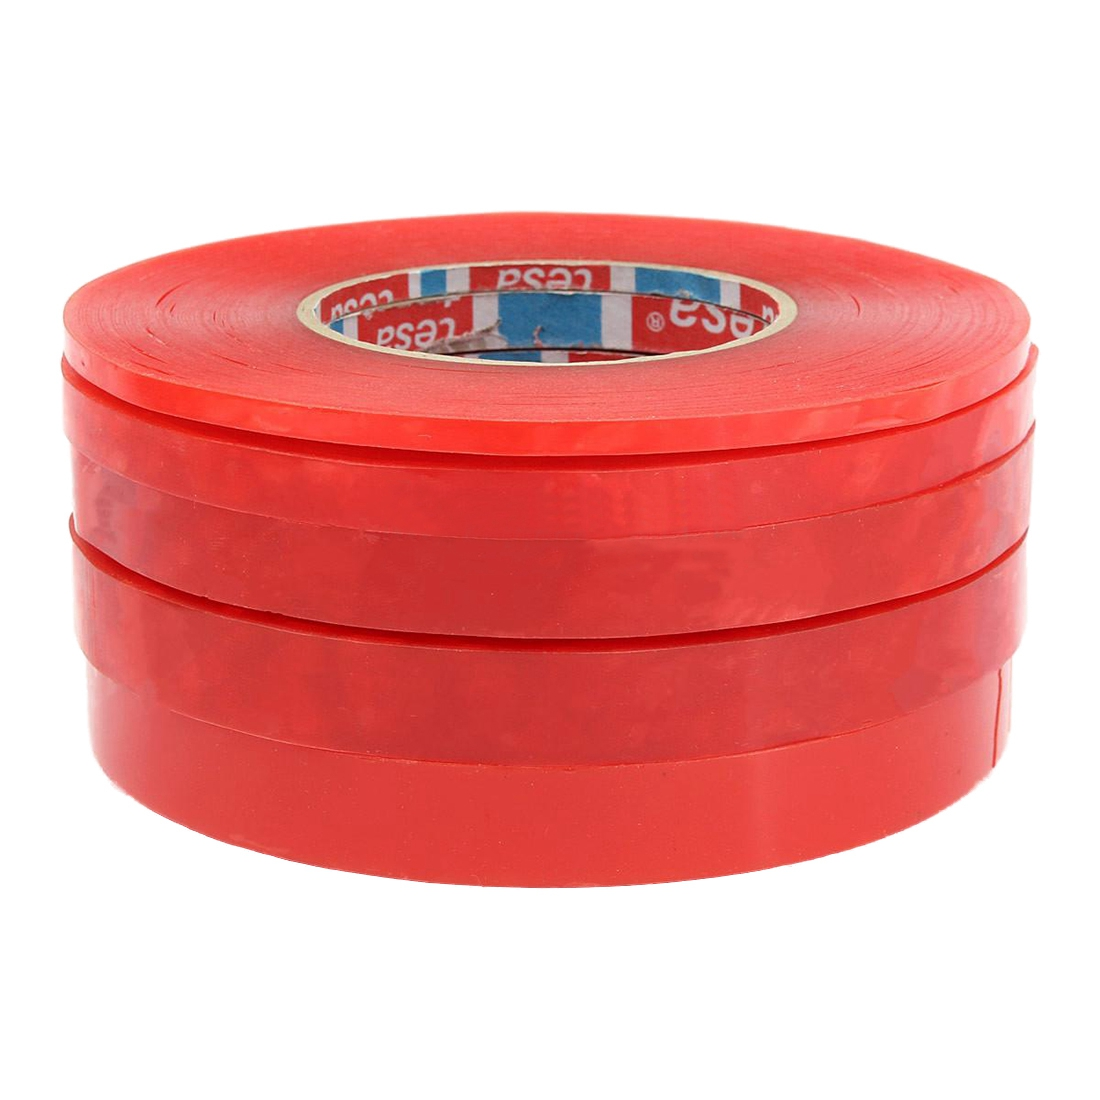 Double Sided Duct Tape 50m Heat Resistance Tape Mounting